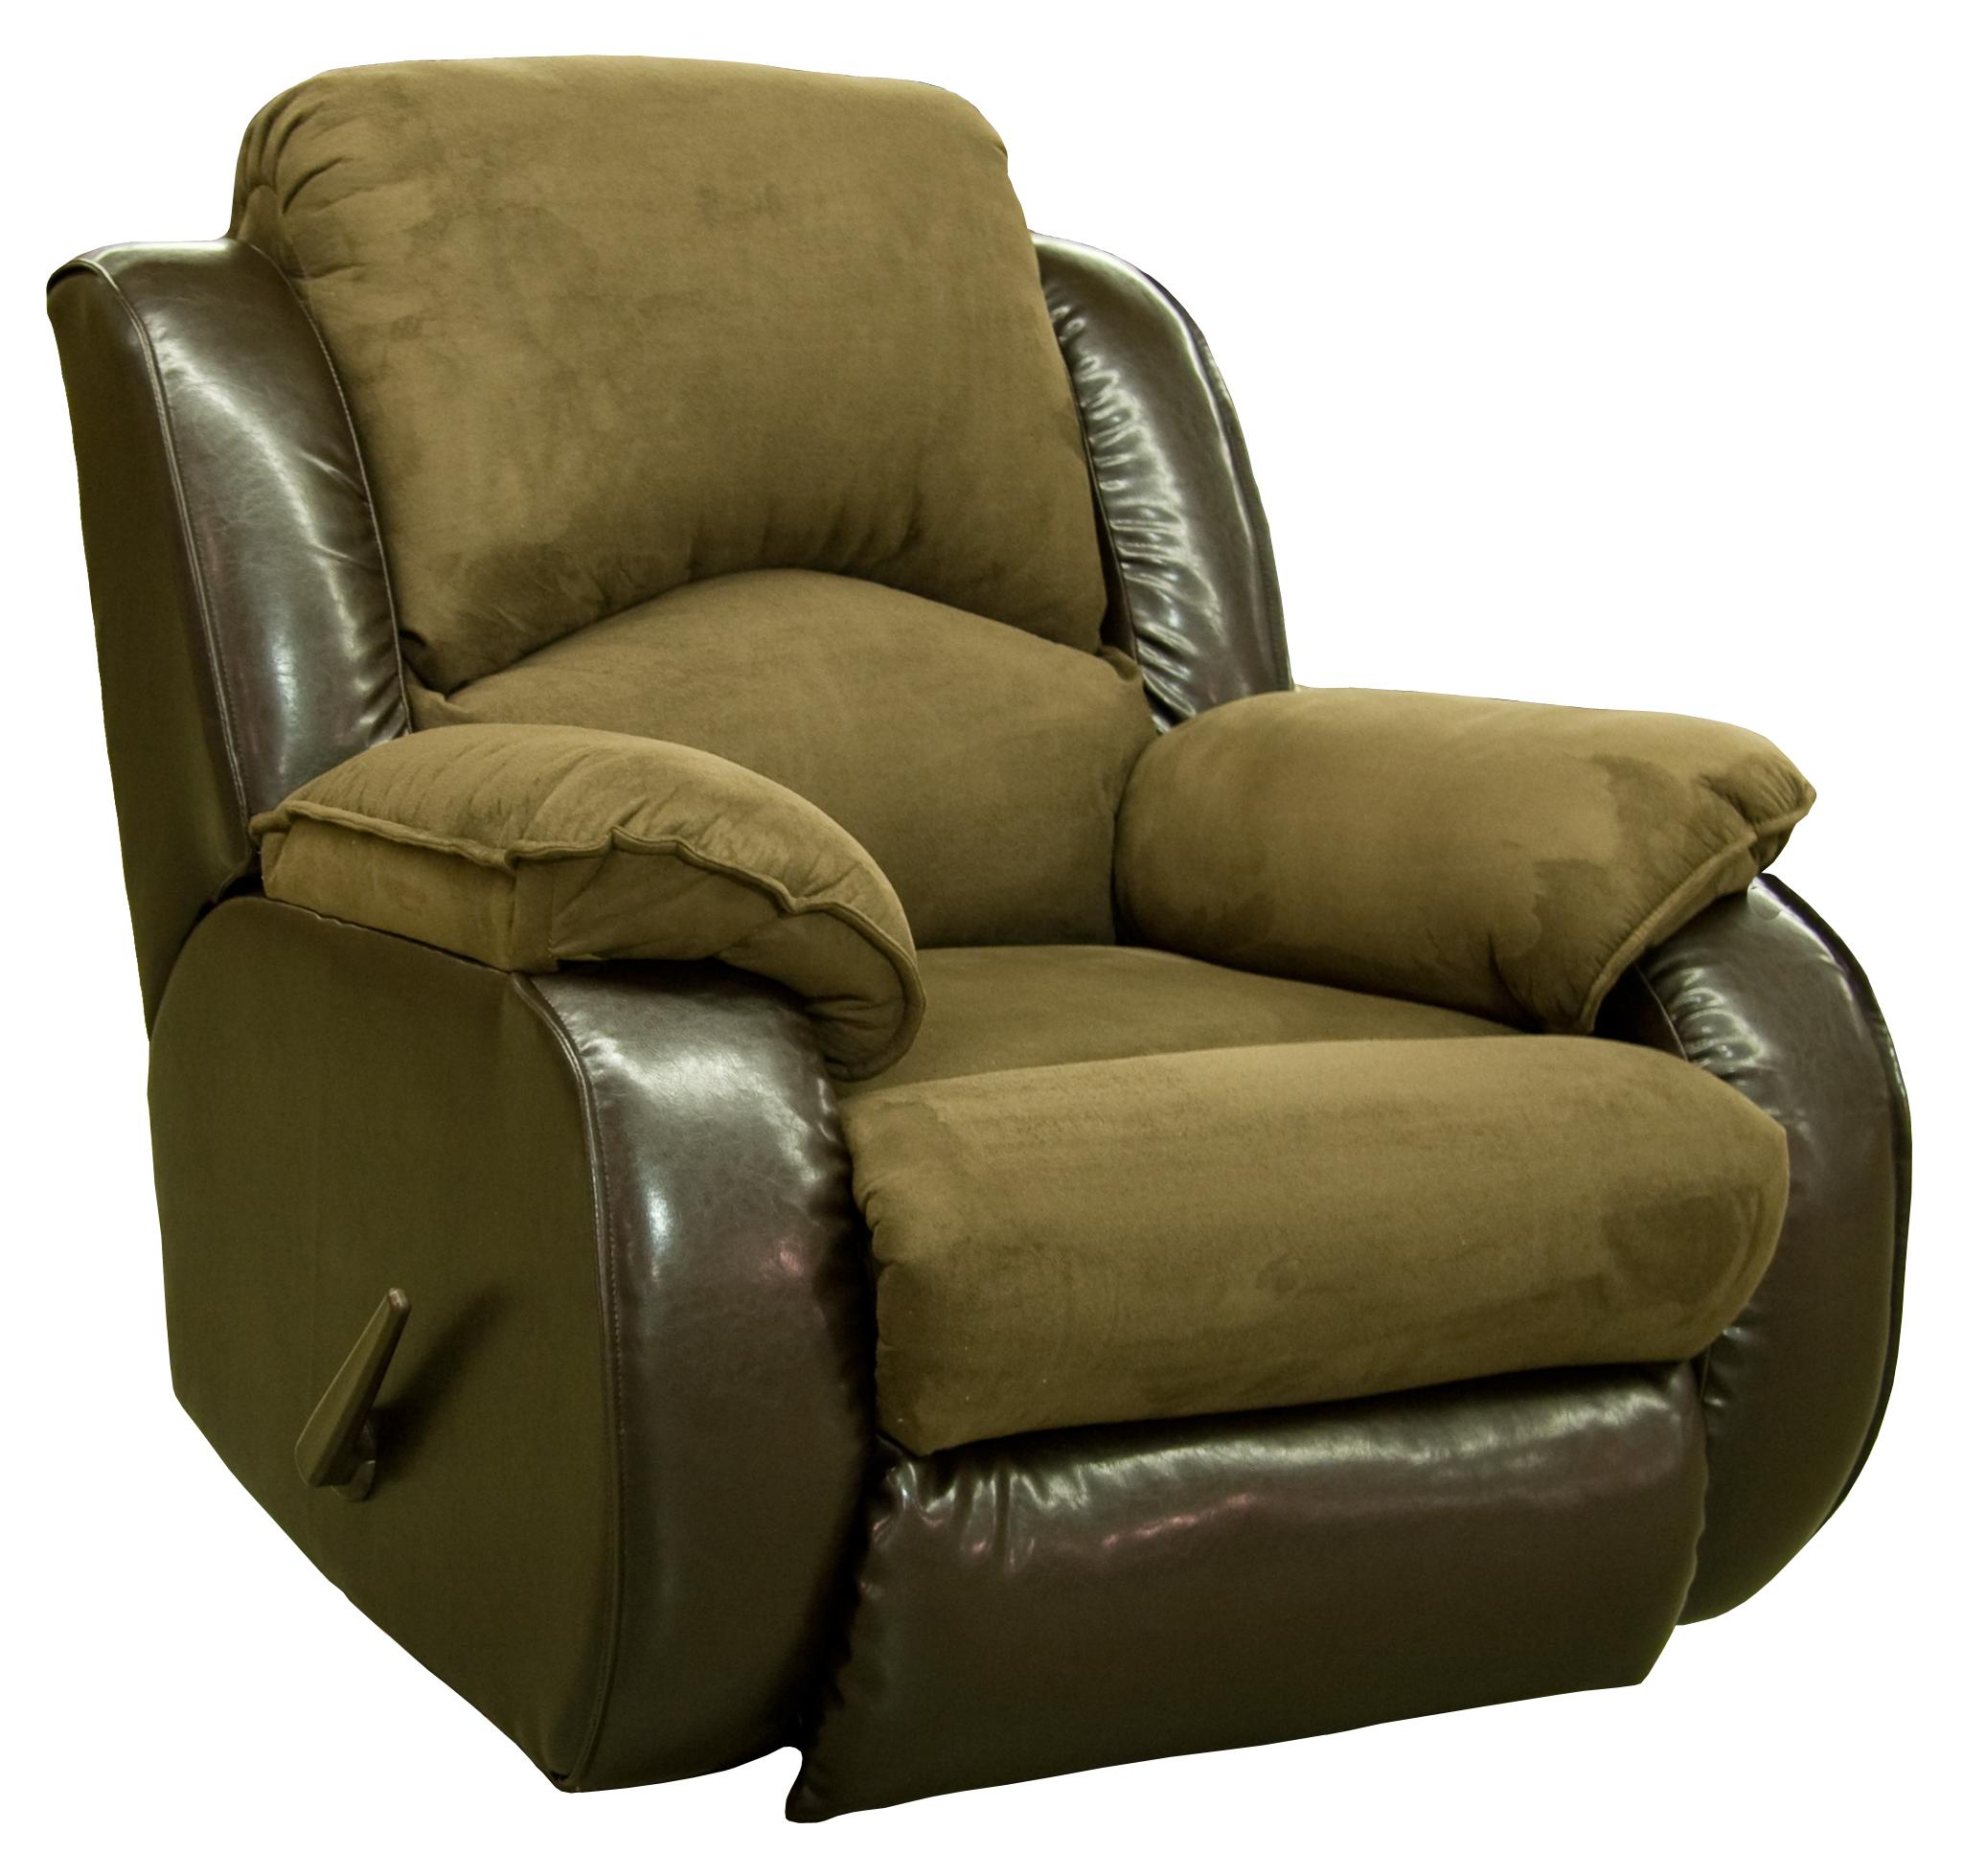 Southern Motion Jolson Power Rocker Recliner - Item Number: 1106 PWR